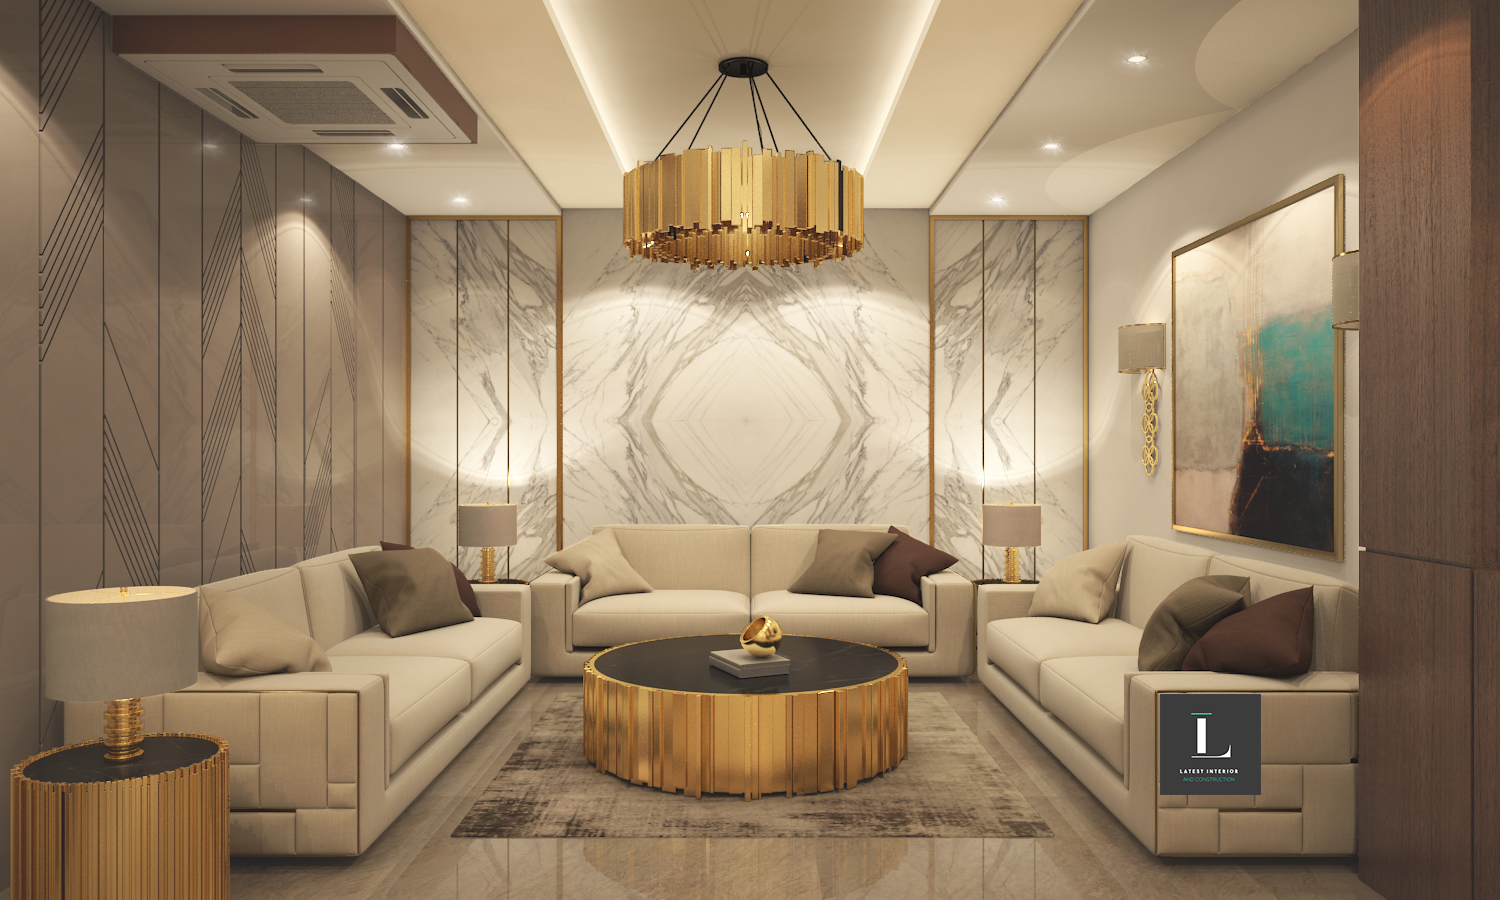 Discover The Best Showroom in Delhi! delhi Discover The Best Showrooms in Delhi! latest